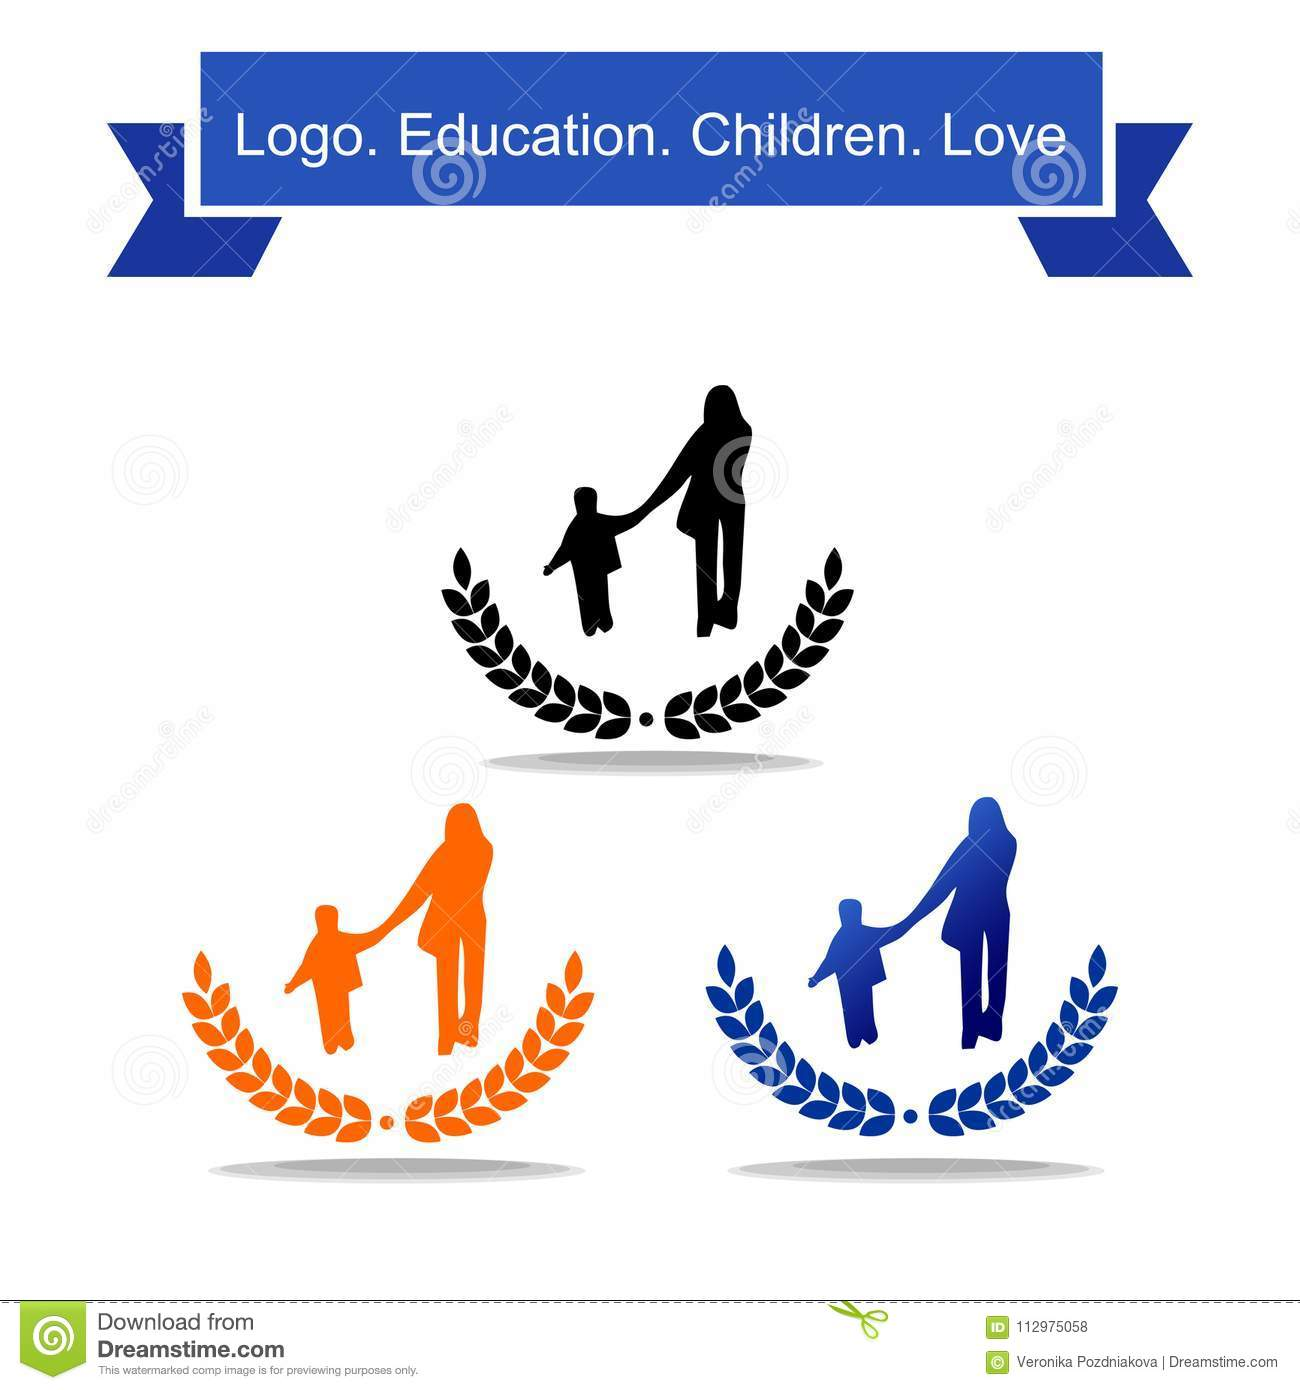 Logo of an adult and a child hold on to the hand. Education